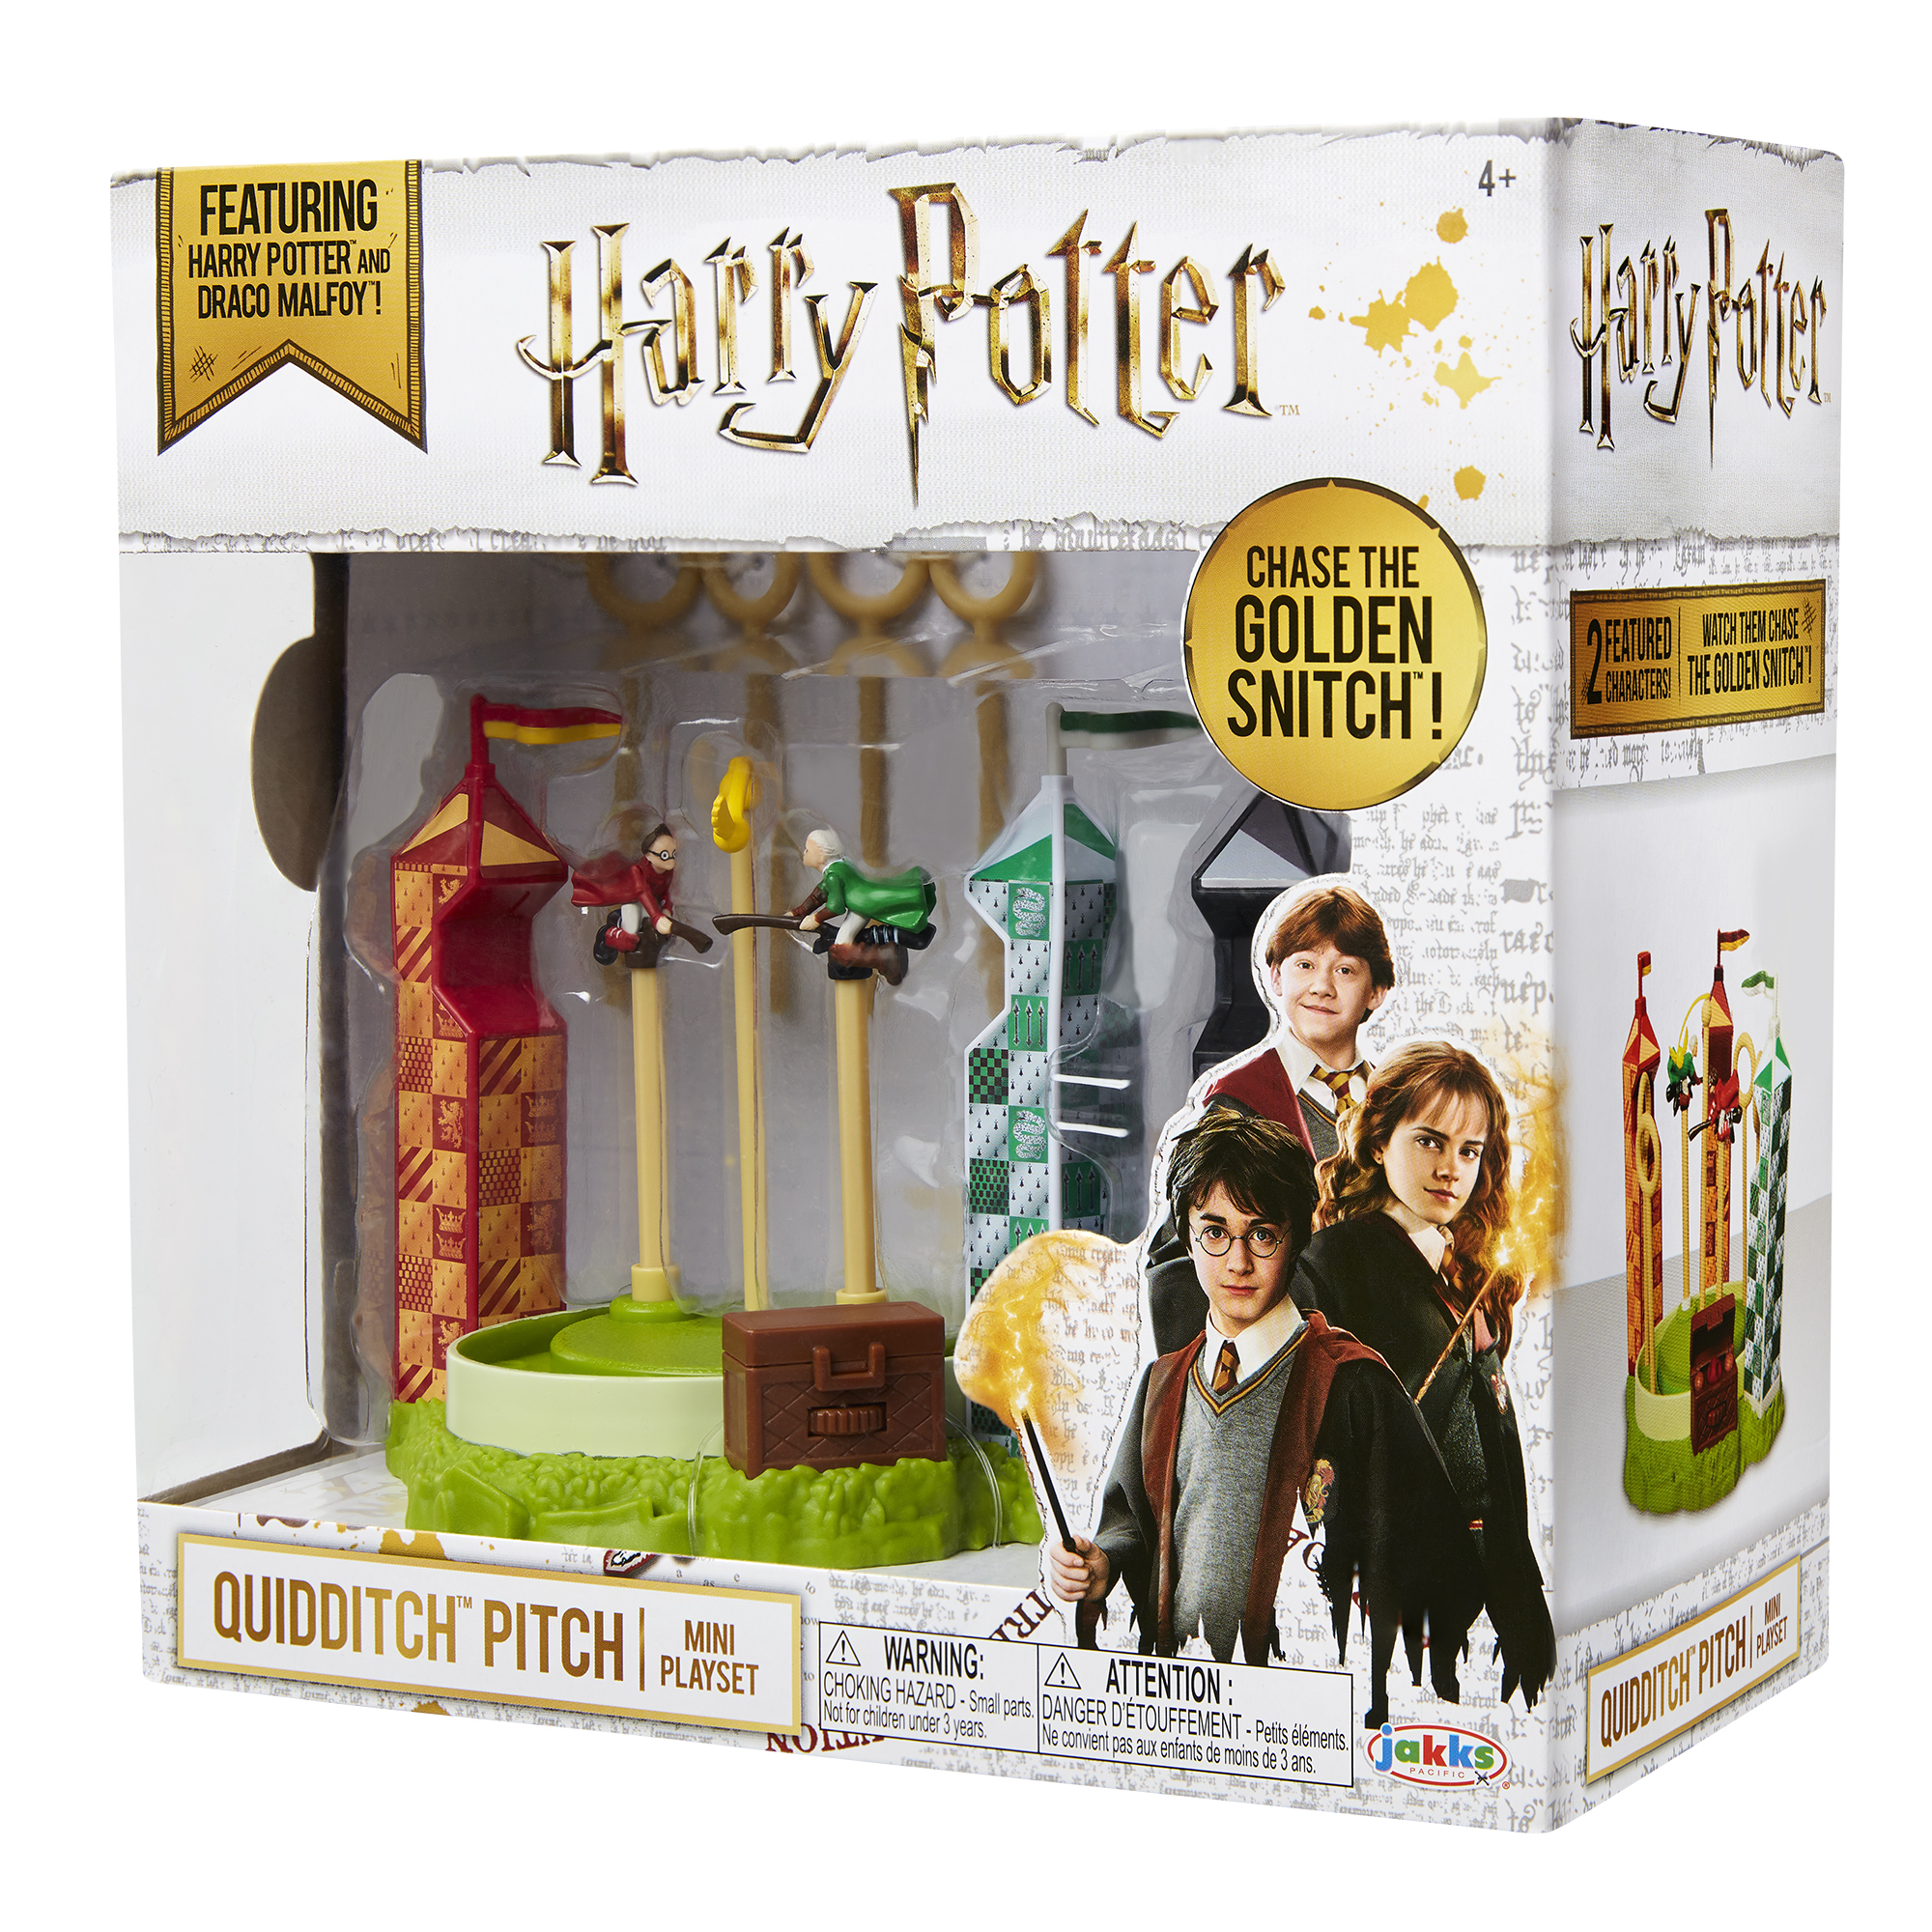 Harry Potter Quidditch™ Pitch Mini Playset